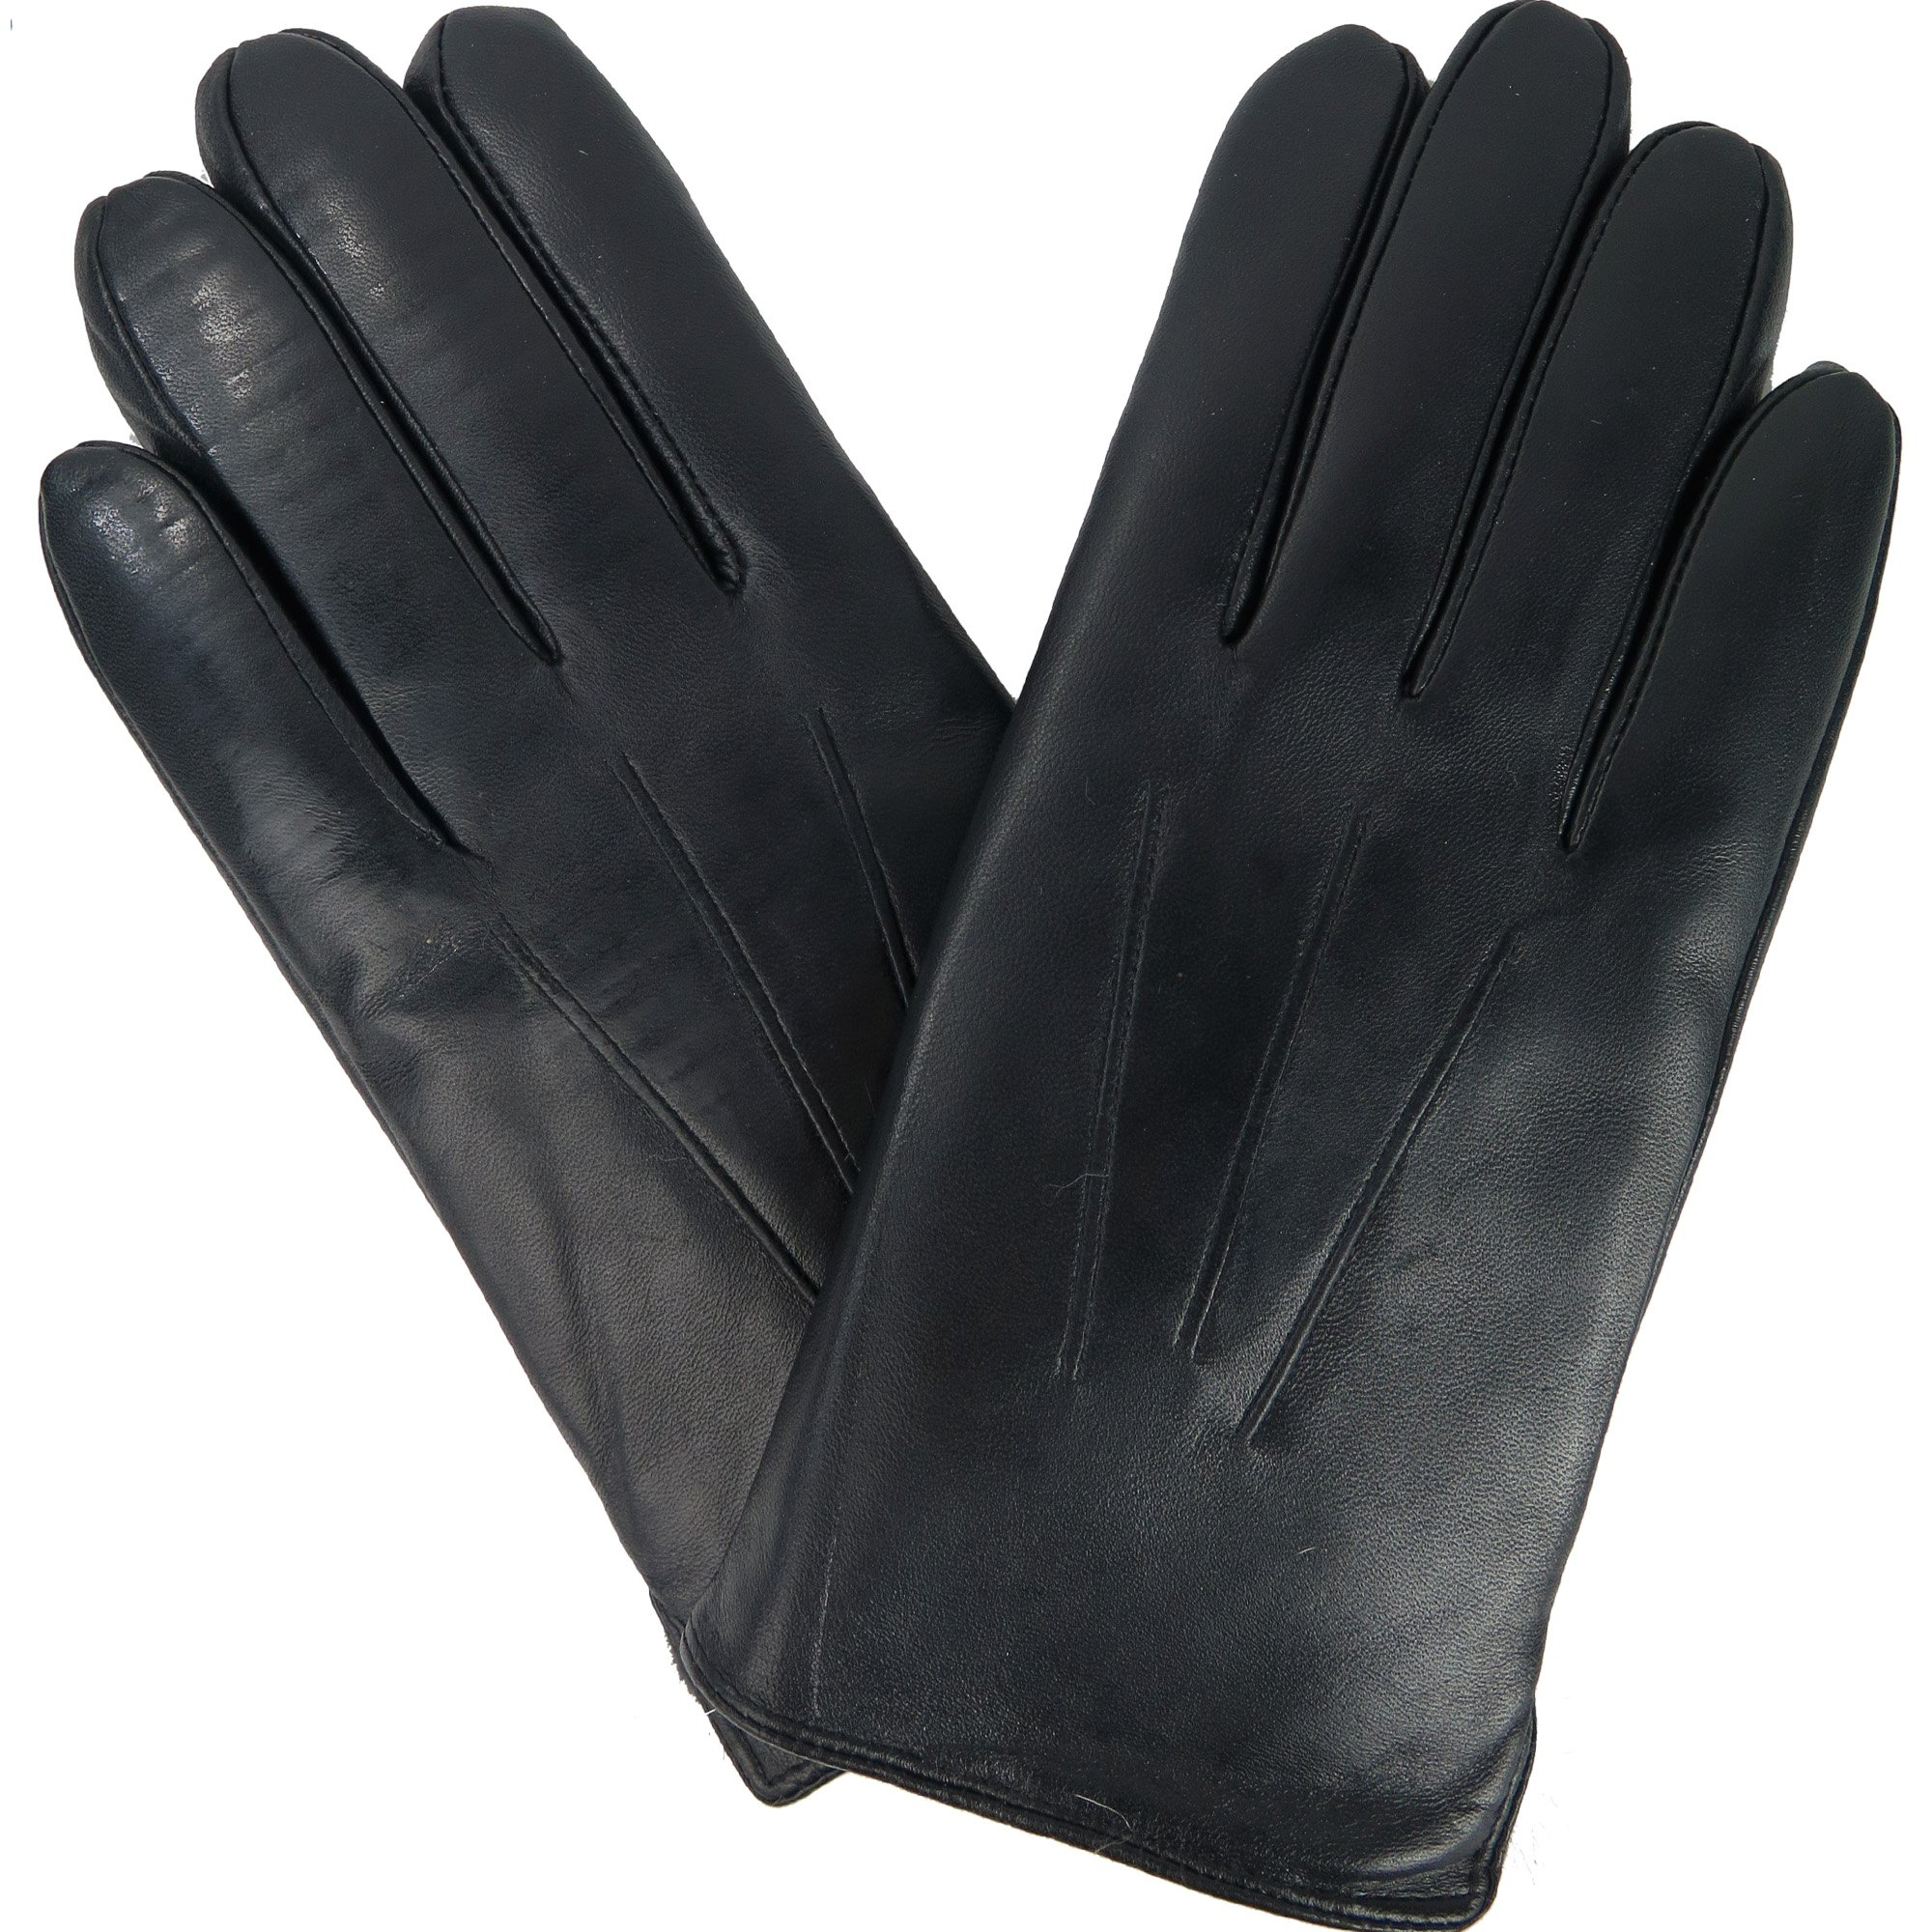 Mens Black Leather Winter Gloves w/ Rabbit Fur Lining And